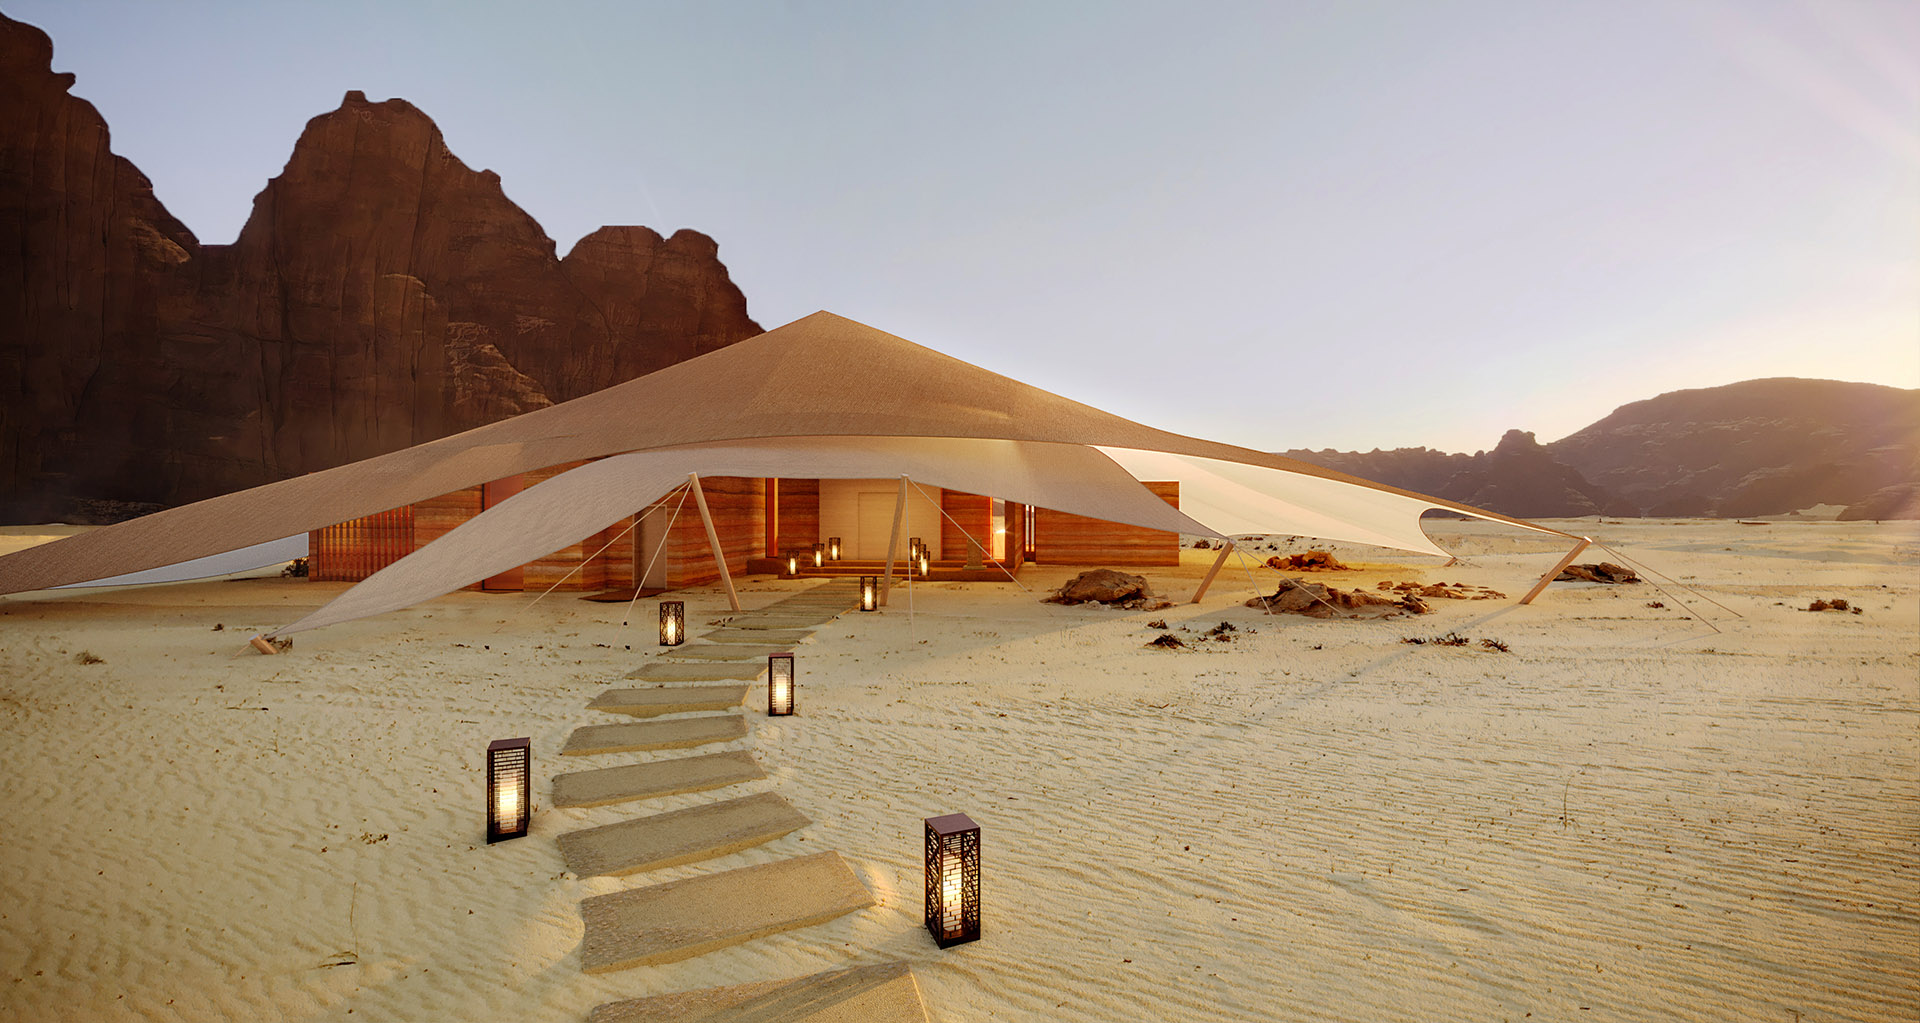 3D Graphism of a luxury tented resort in Morocco desert